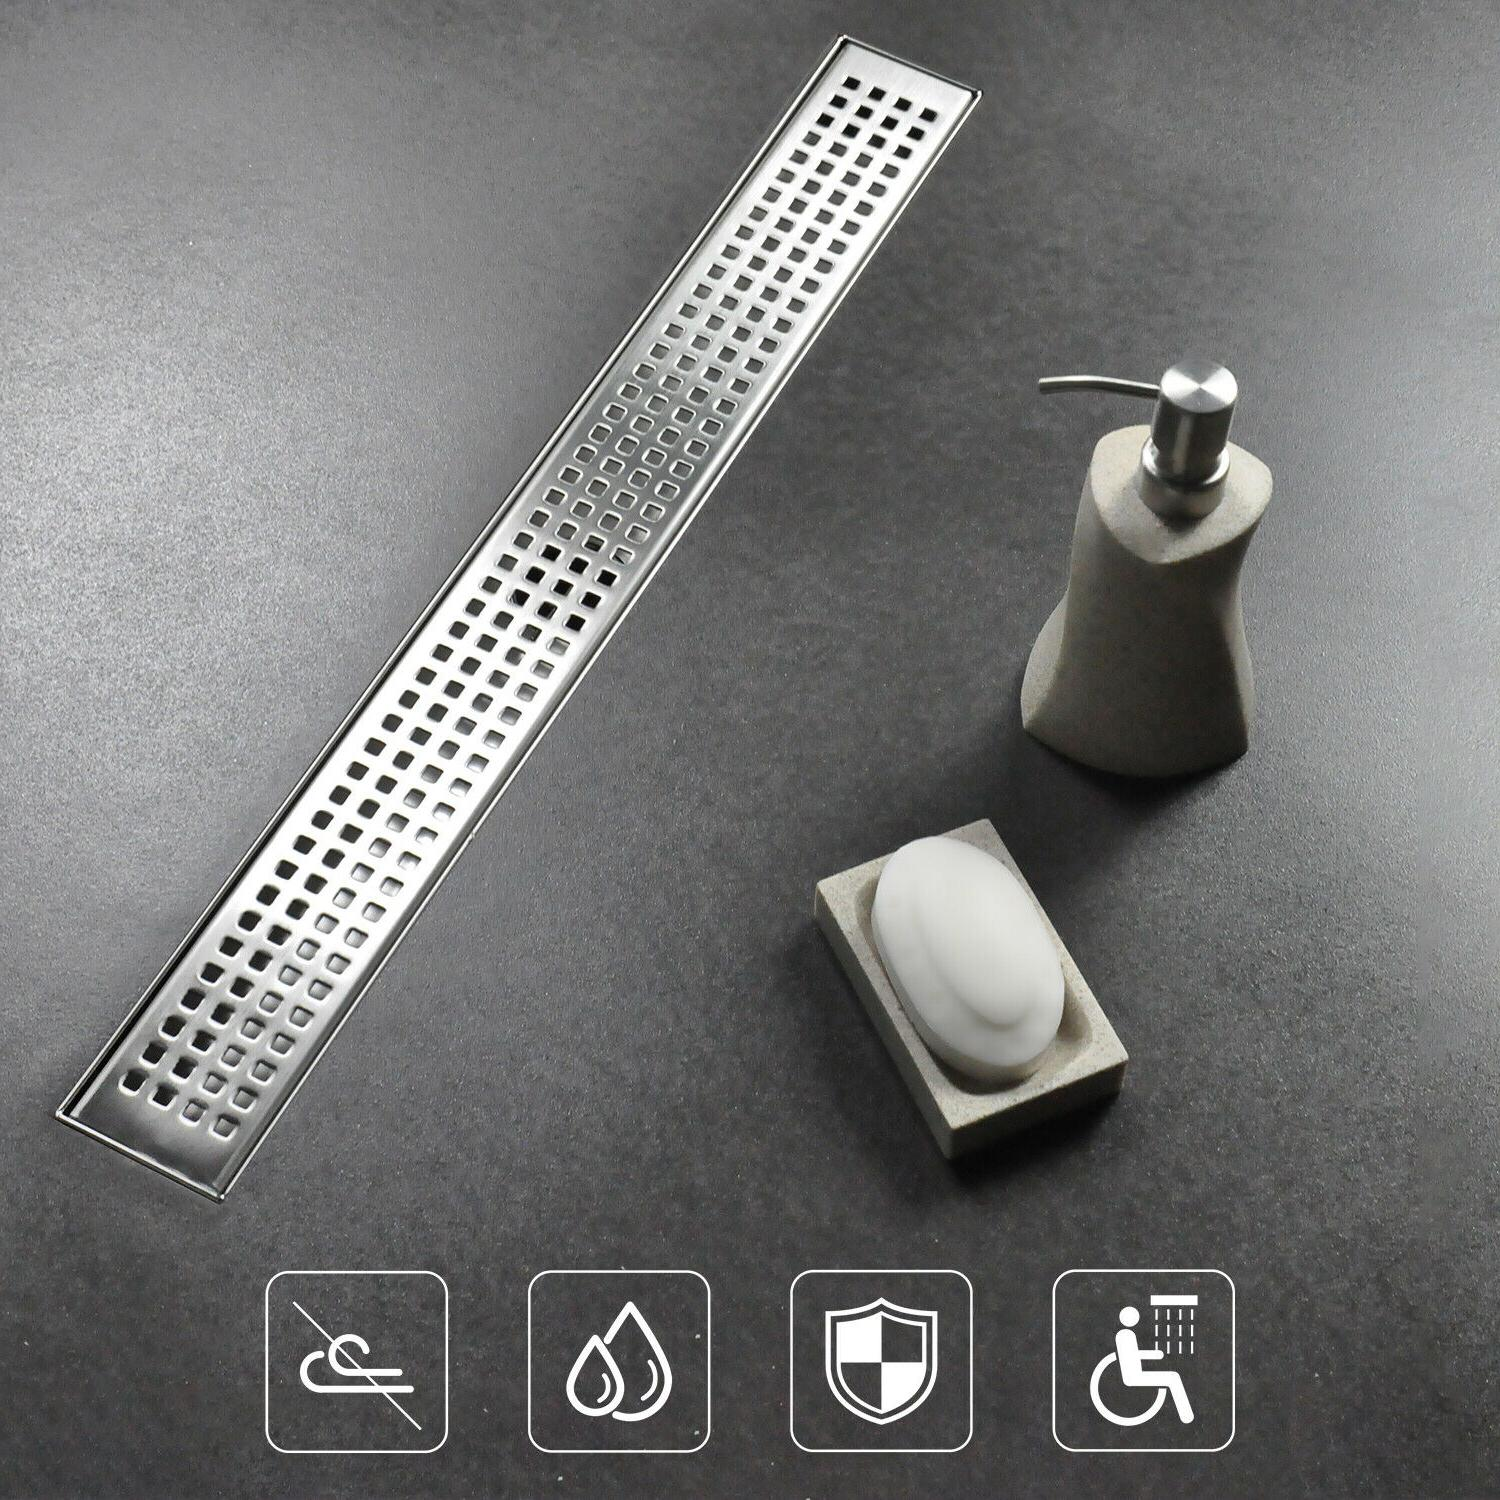 24 inch square hole pattern bathroom linear